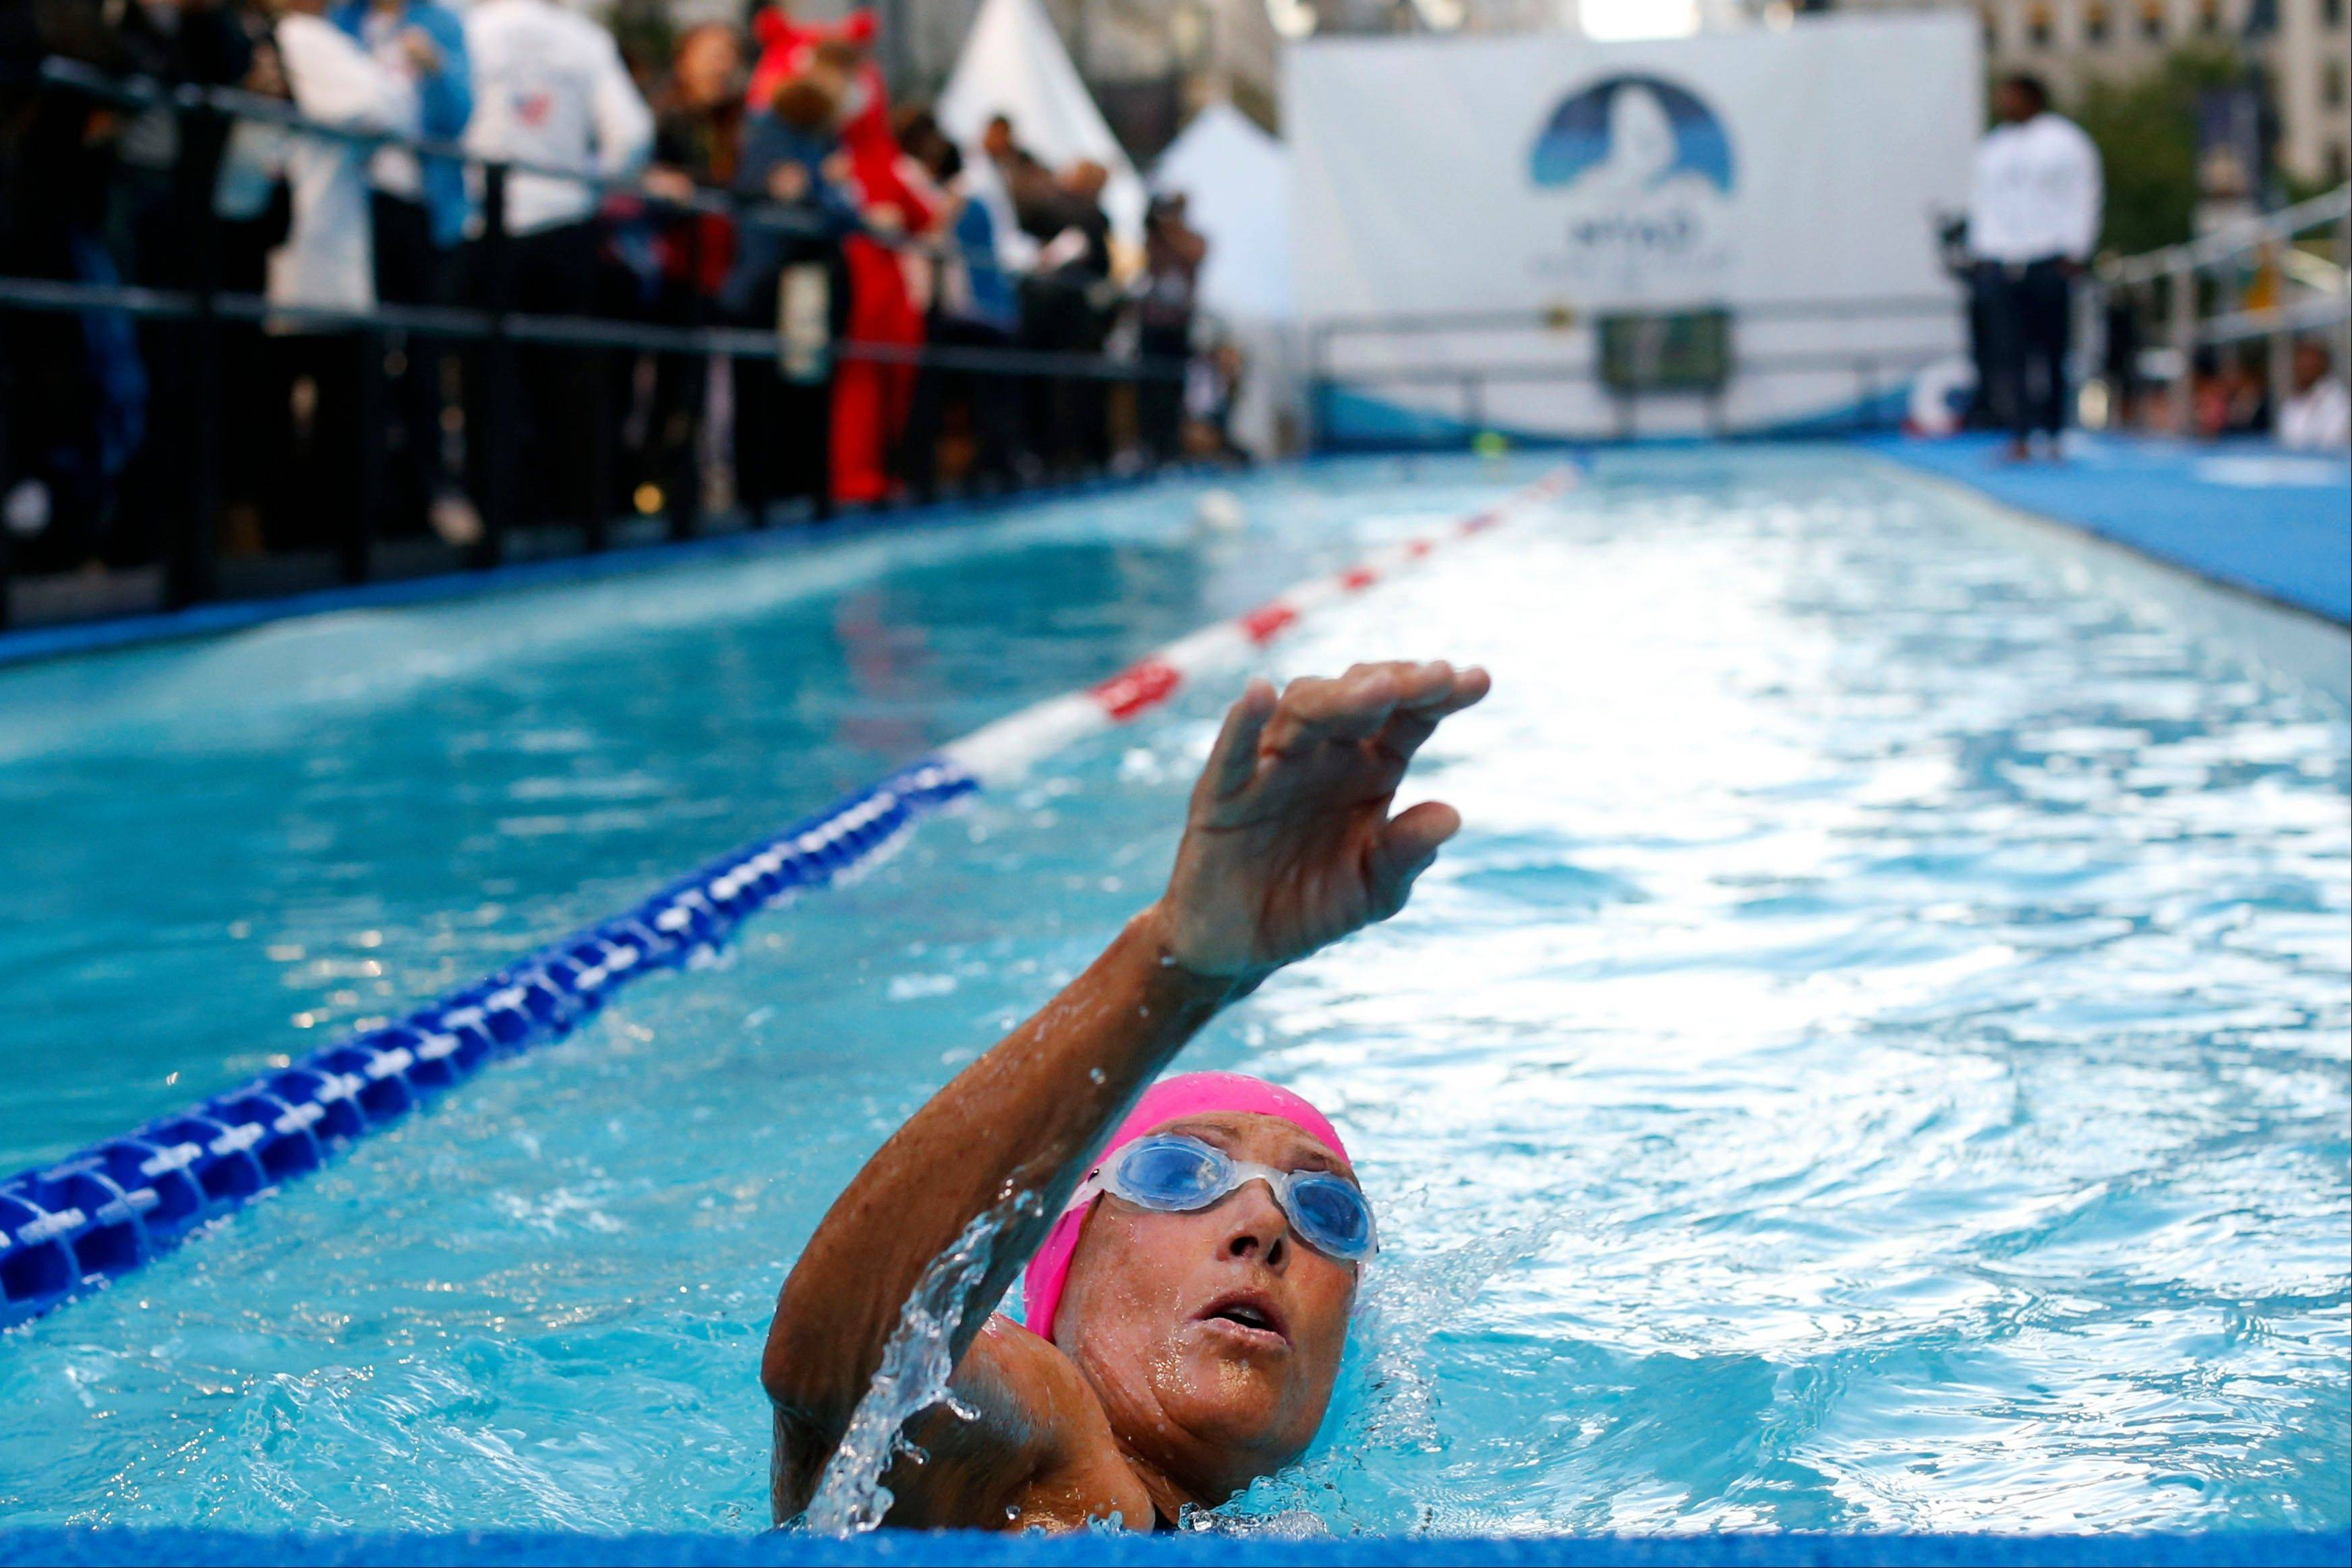 Long-distance swimmer Diana Nyad, who recently completed a record-breaking swim from Cuba to Florida, completes a lap during a continuous 48-hour swim event in New York�s Herald Square called �Swim for Relief,� which aims to raise funds and awareness for Hurricane Sandy recovery efforts, Tuesday, Oct. 8, 2013.